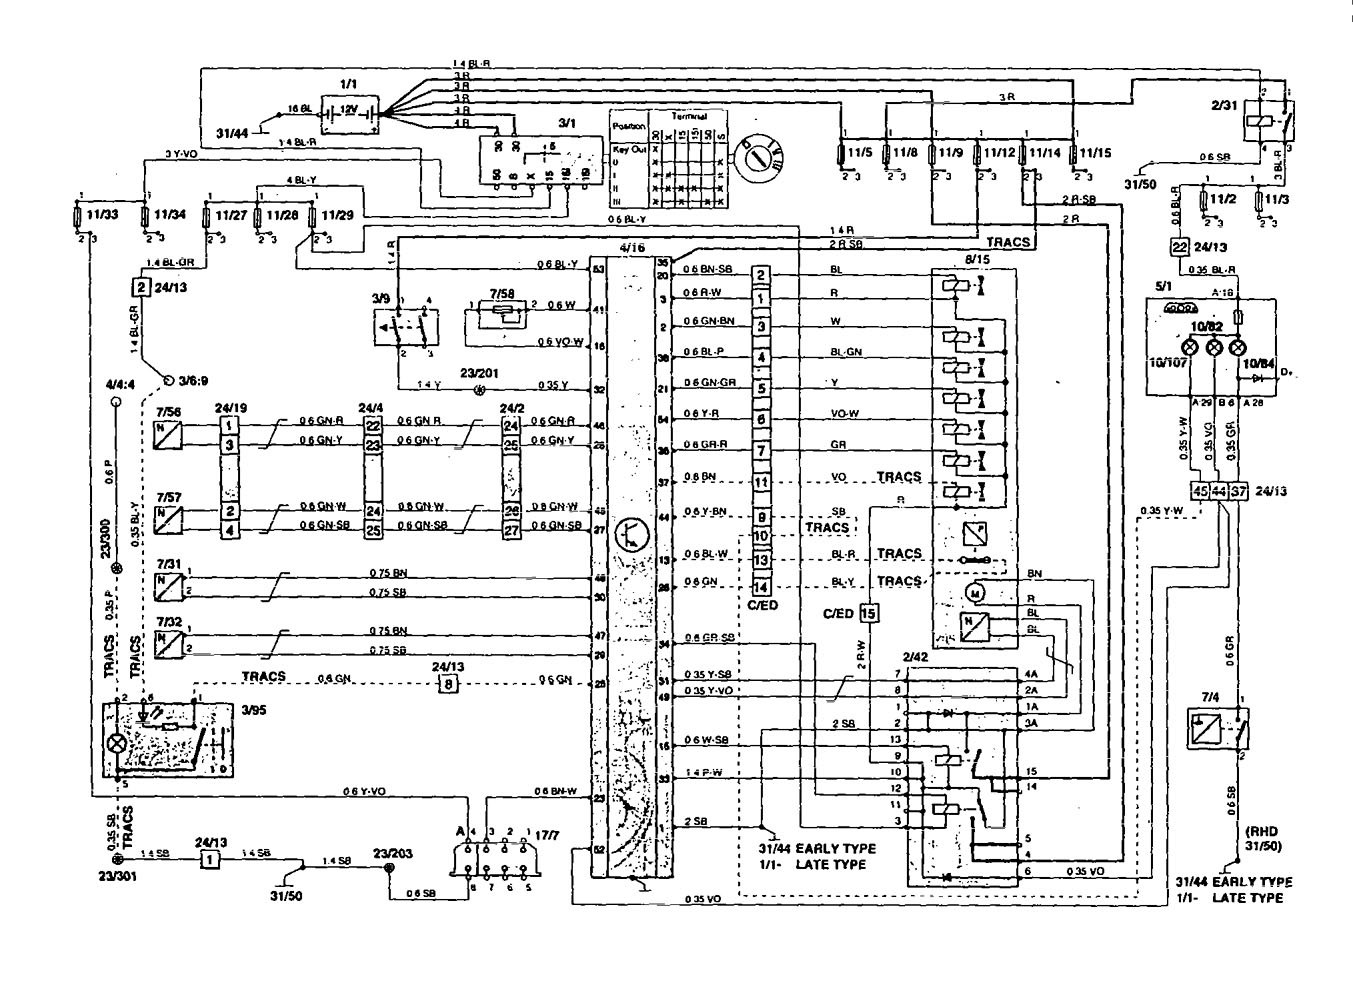 Volvo 850 Parts Diagram Great Design Of Wiring 2004 Xc90 Engine 1995 Diagrams Traction Controls 1998 S70